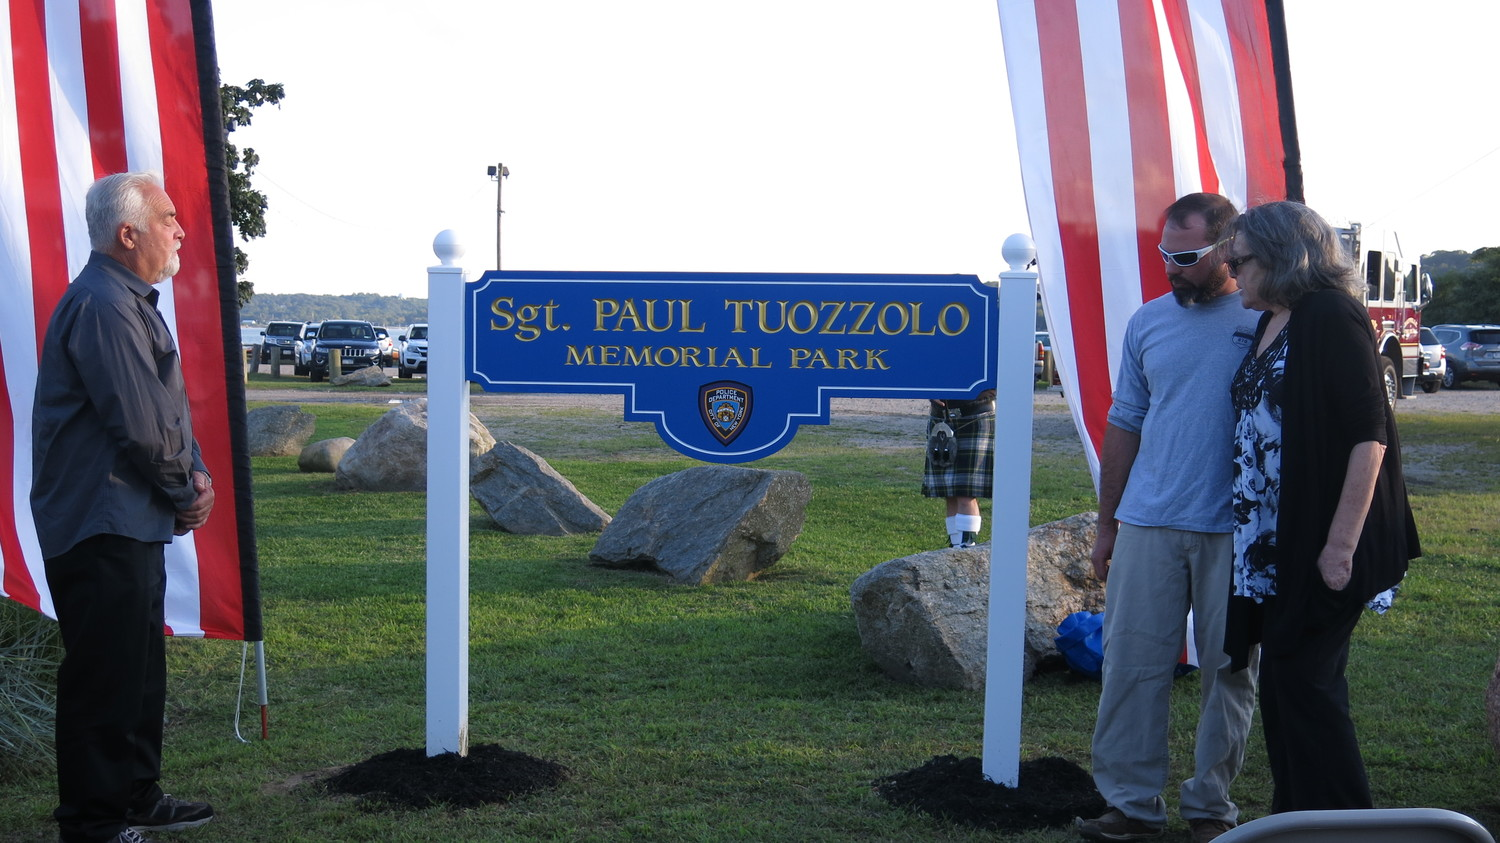 Sgt. Paul Tuozzolo's father, Peter, far left, his brother, Peter, and his mother, Denise, helped unveil the sign at West Harbor Beach that honors Paul, a 19-year veteran of the NYPD who was killed in the line of duty.